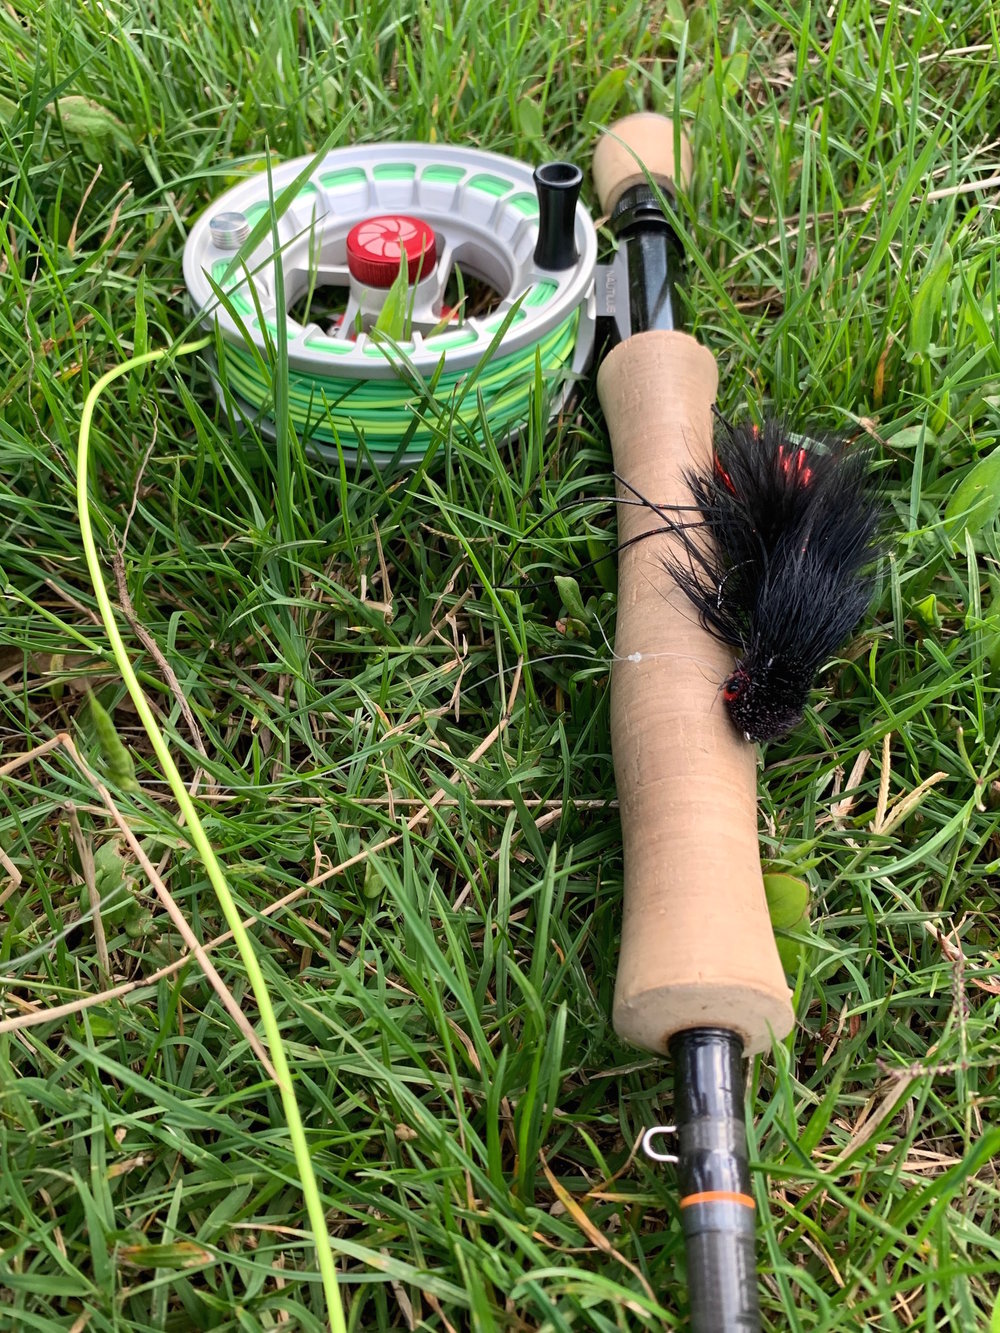 My chosen flyfishing setup for chasing Murray Cod here in the Australian high country.